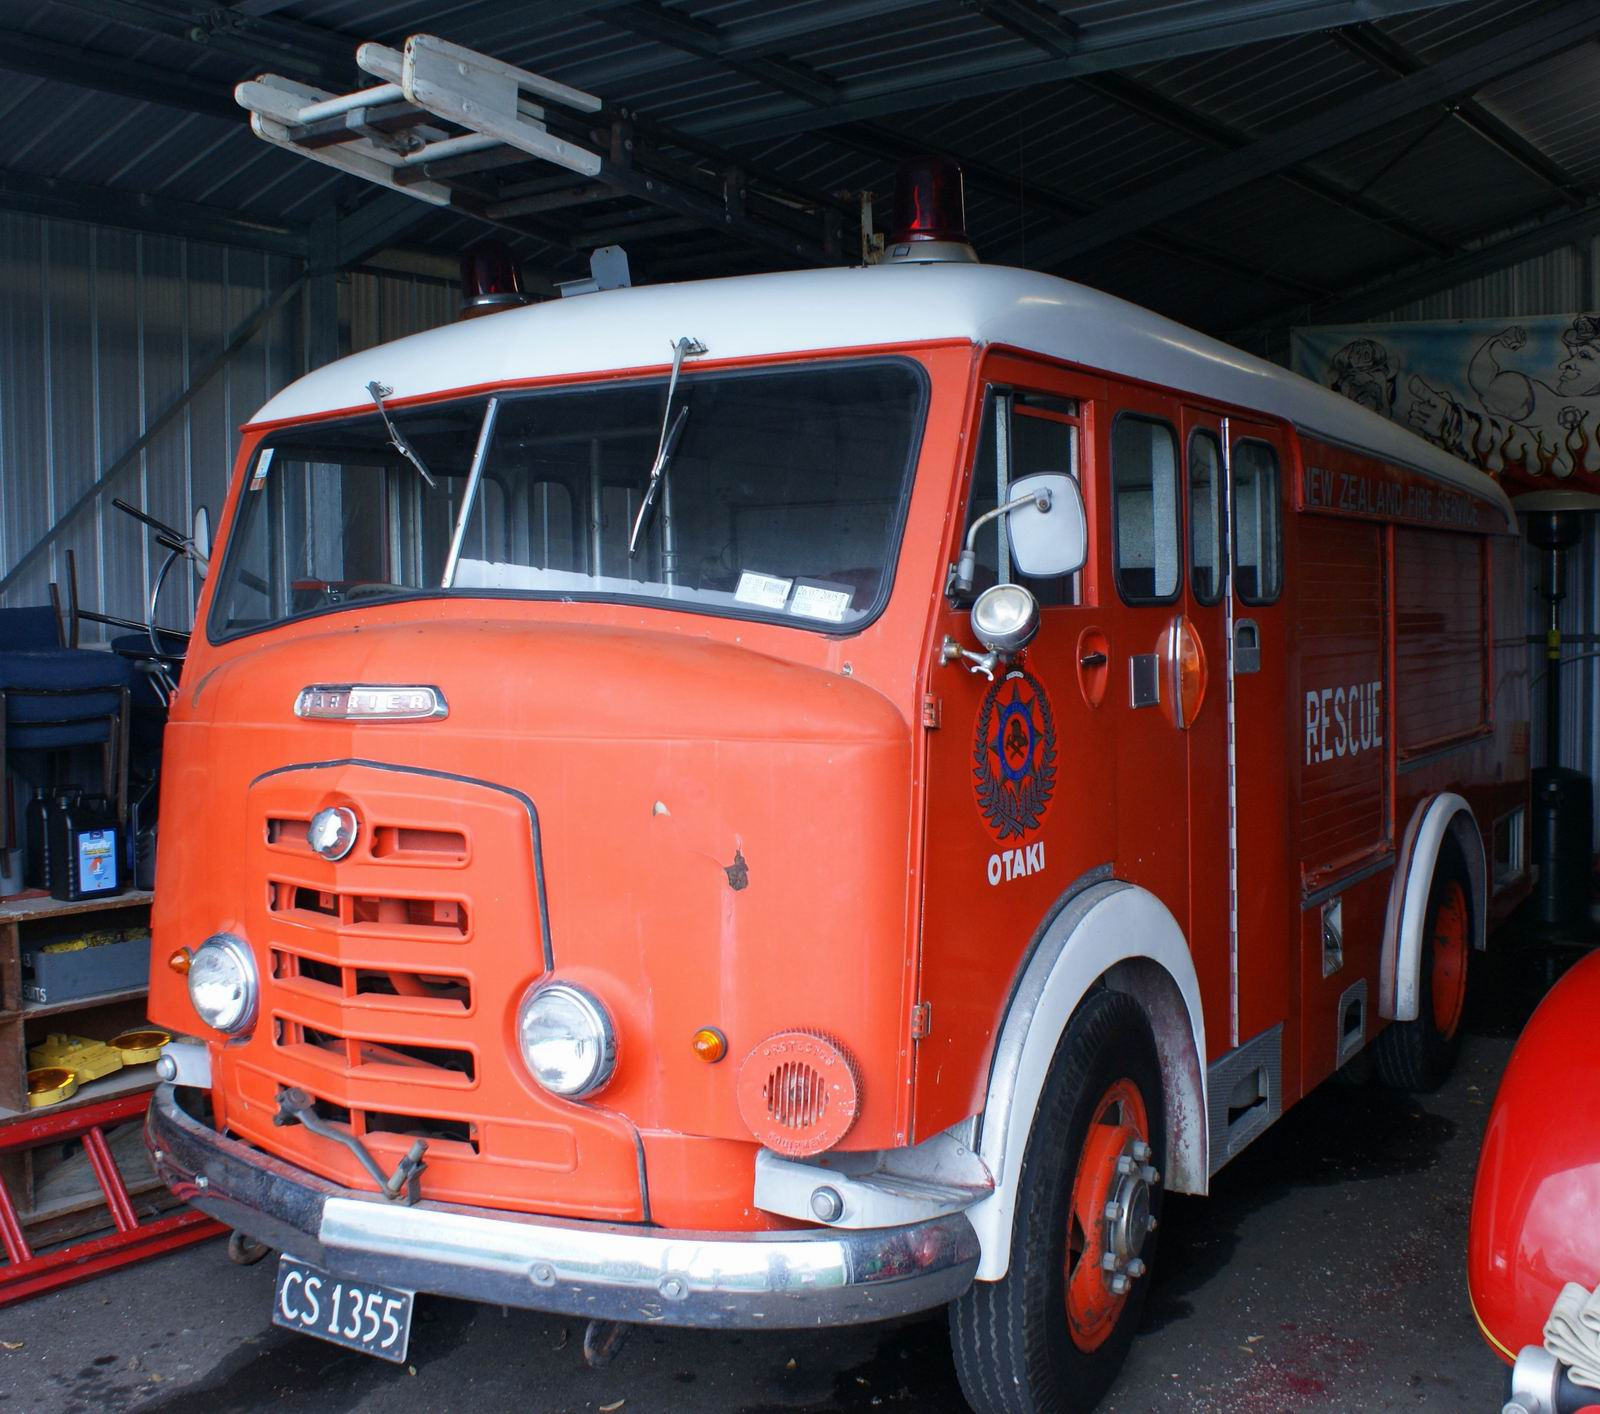 http://www.111emergency.co.nz/FIRE/Vintage/1960s/CS1355.JPG